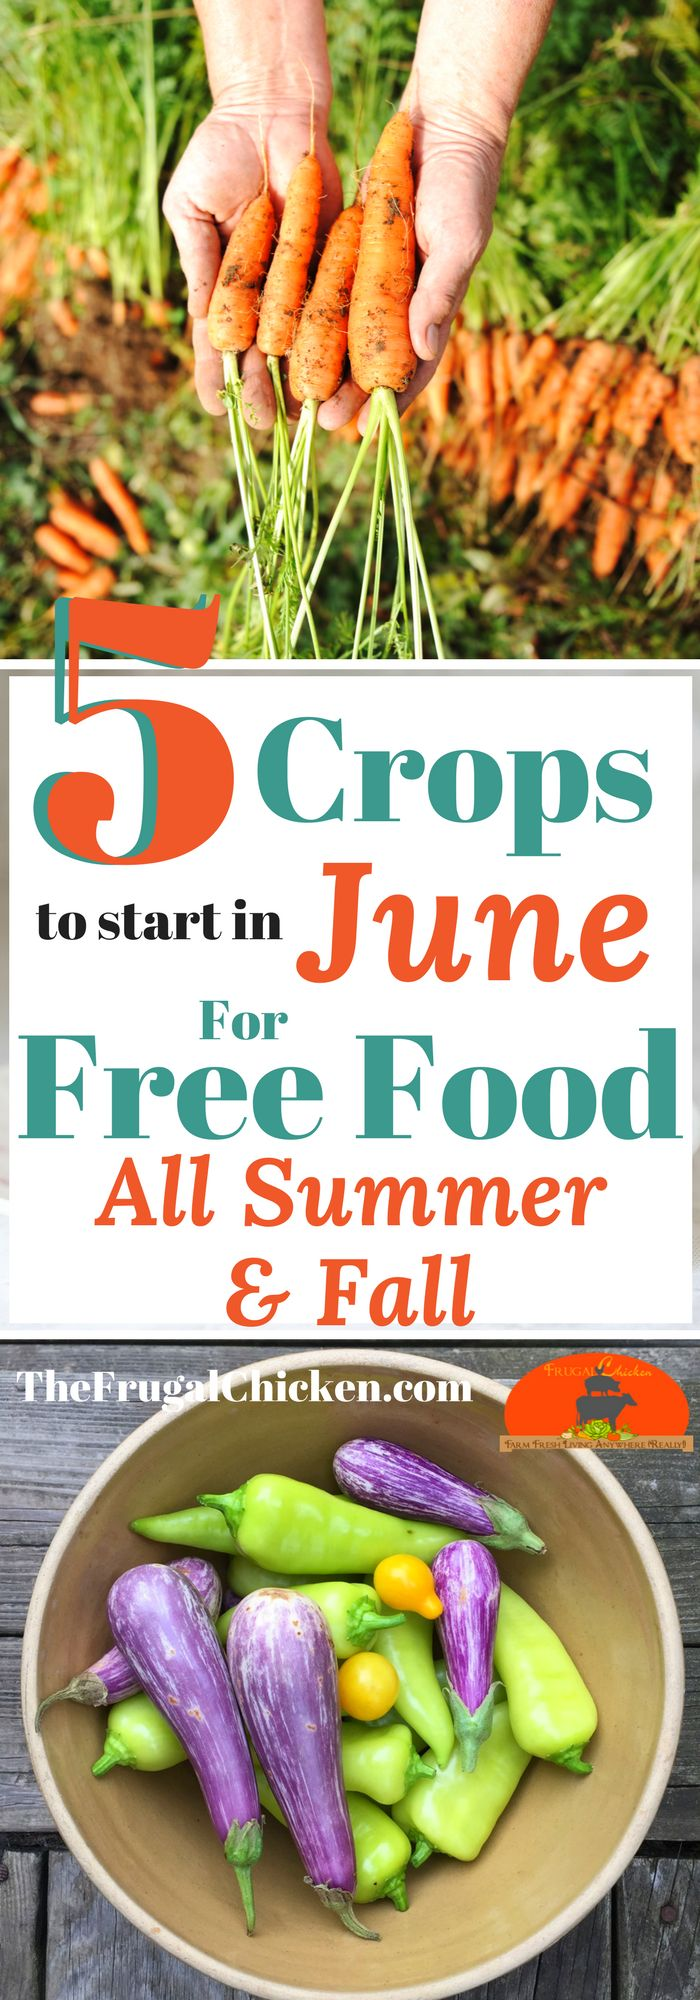 Summer is here, but your chances at a successful harvest is far from over. Here's what you can start in your garden right now for free food this summer and into fall!